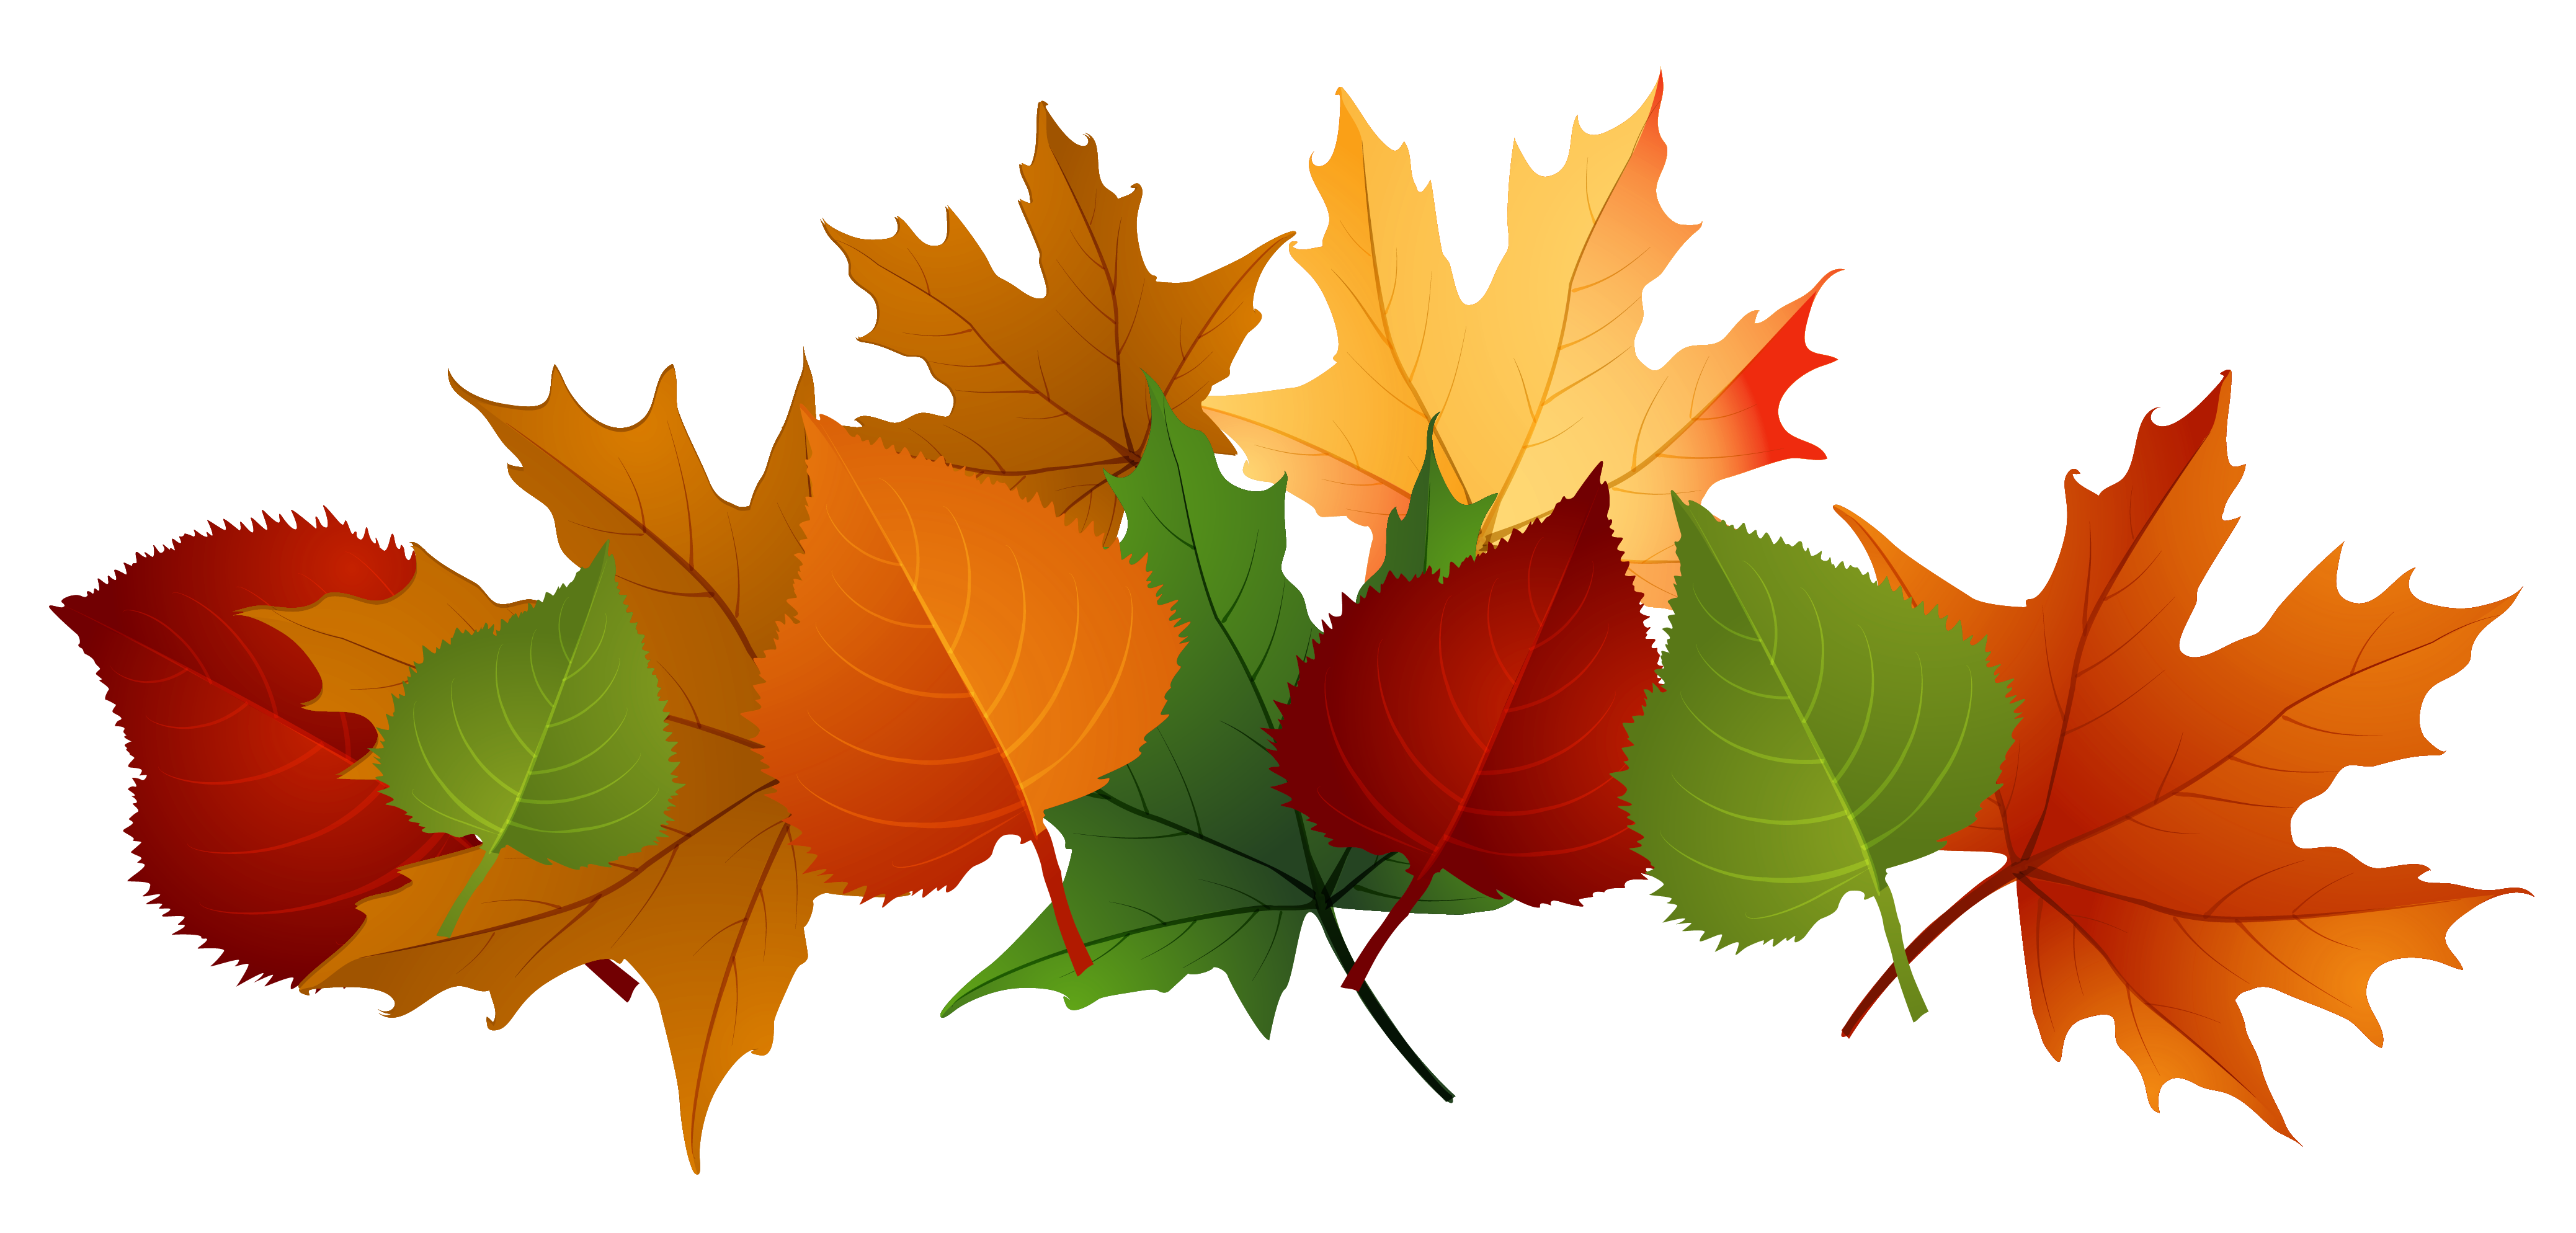 4153x1988 Fall Leaves Fall Leaf Clipart No Background Free Images